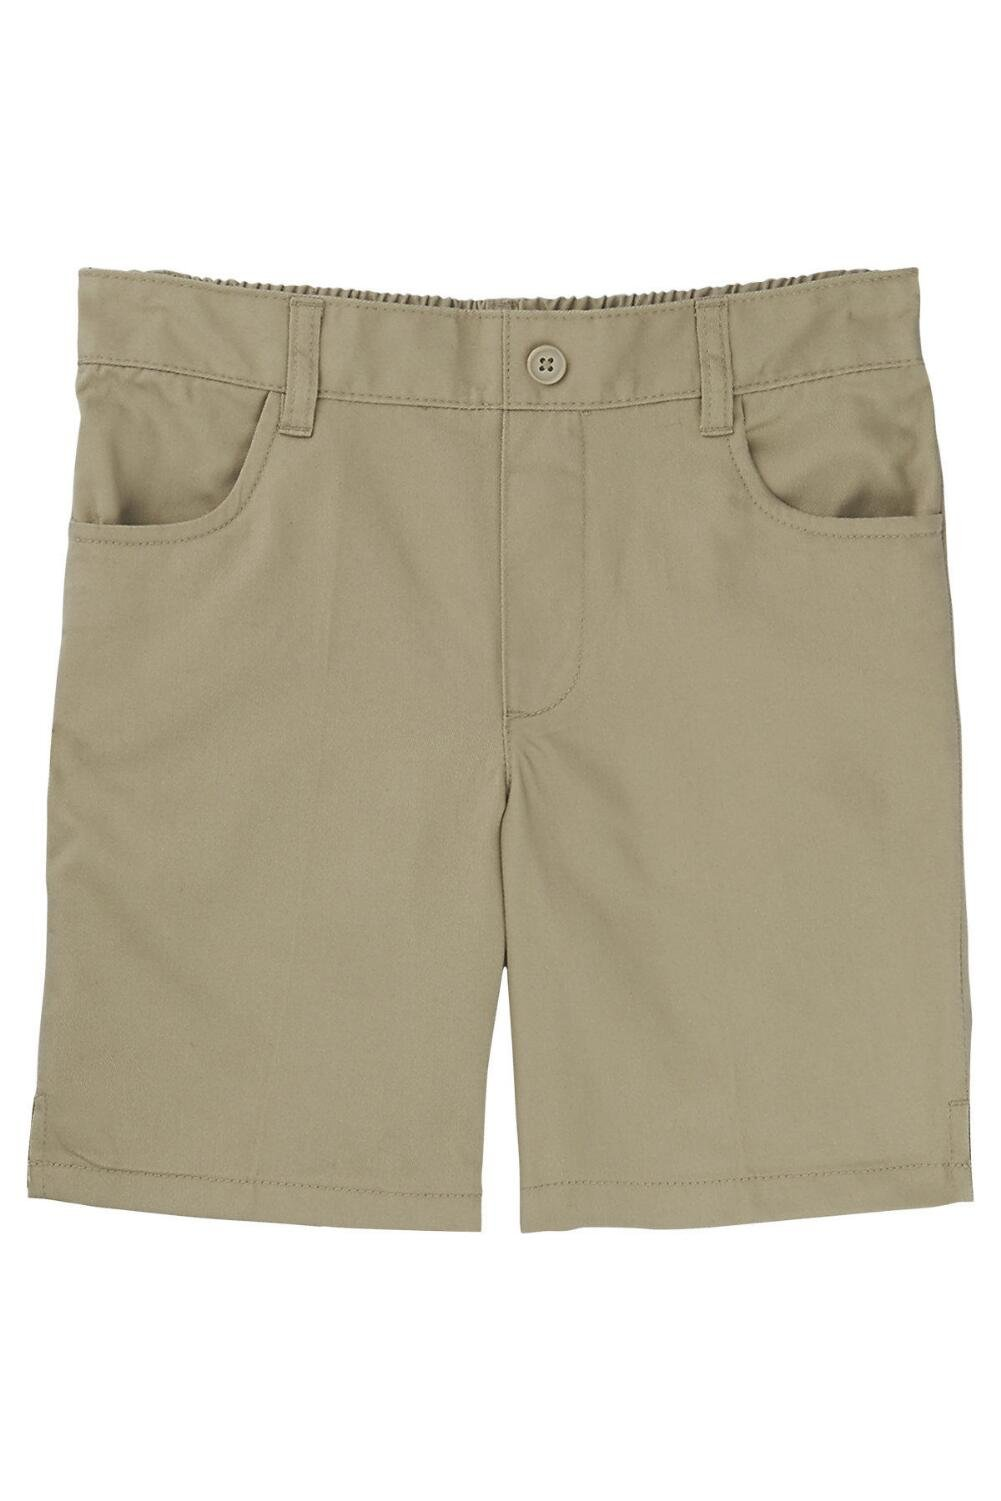 French Toast Little Girls' Pull-on Short, Khaki, 4